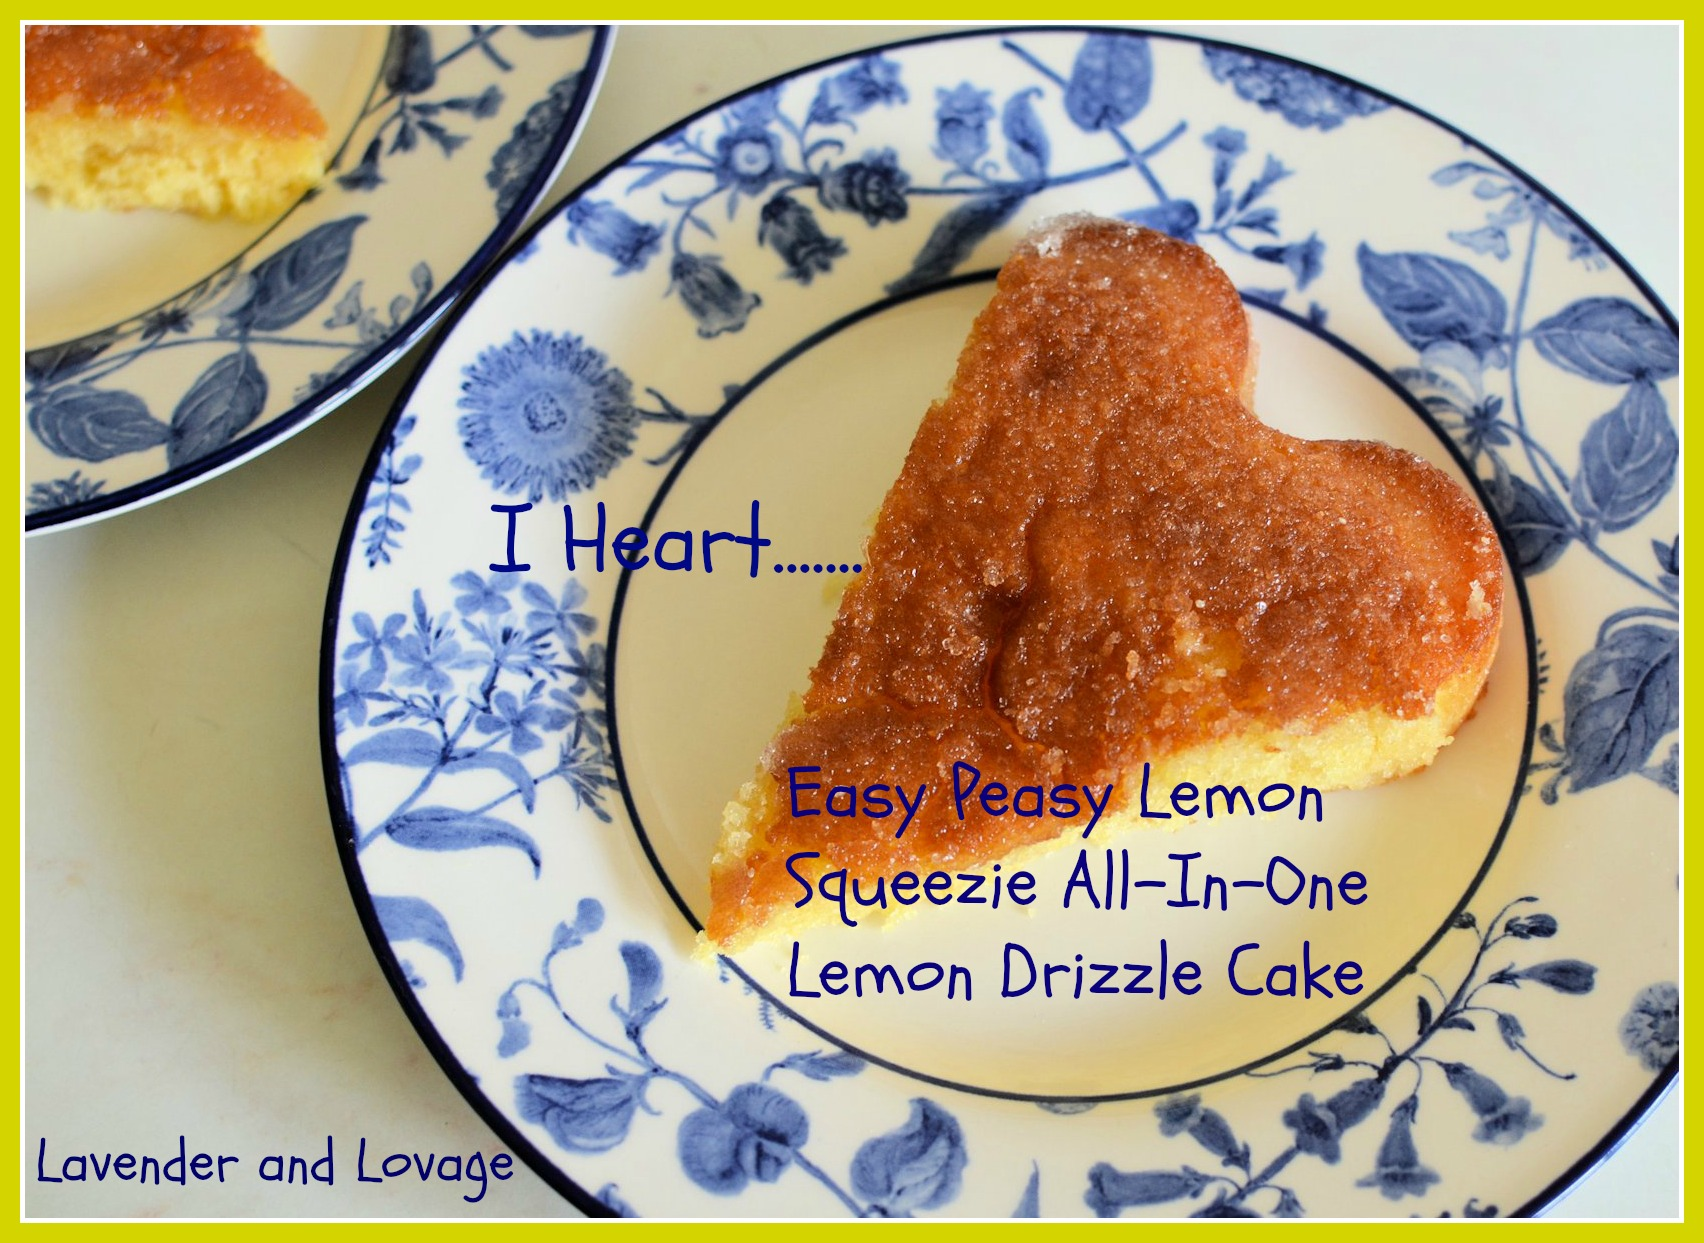 All Recipes Lemon Drizzle Cake: Tea Time Recipe: Easy Peasy Lemon Squeezie All-In-One